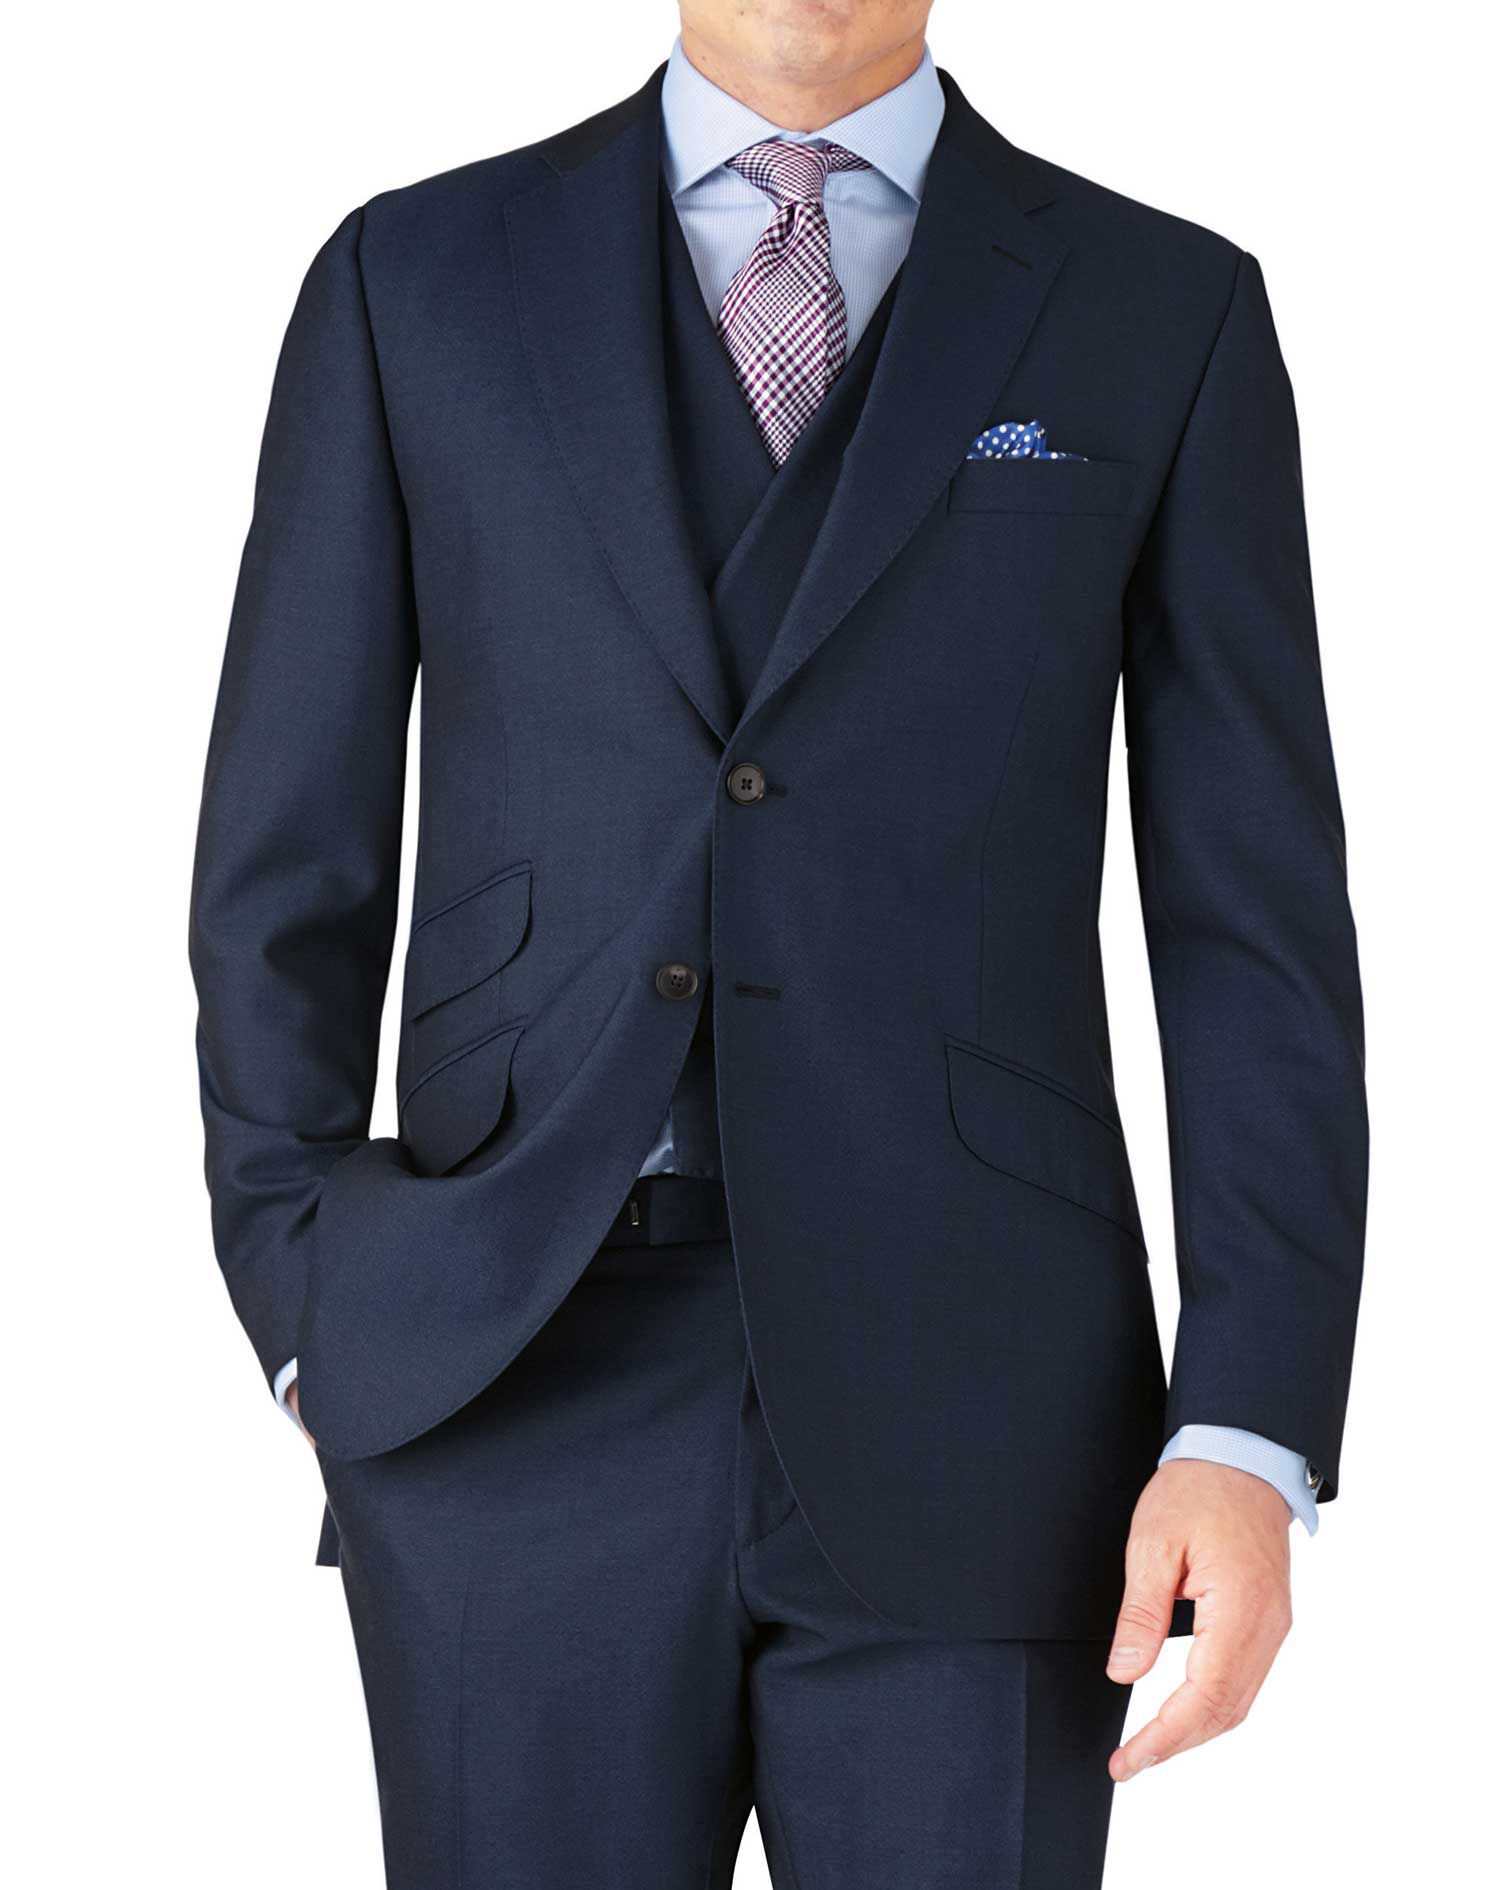 Blue Classic Fit British Panama Luxury Suit Wool Jacket Size 40 Long by Charles Tyrwhitt